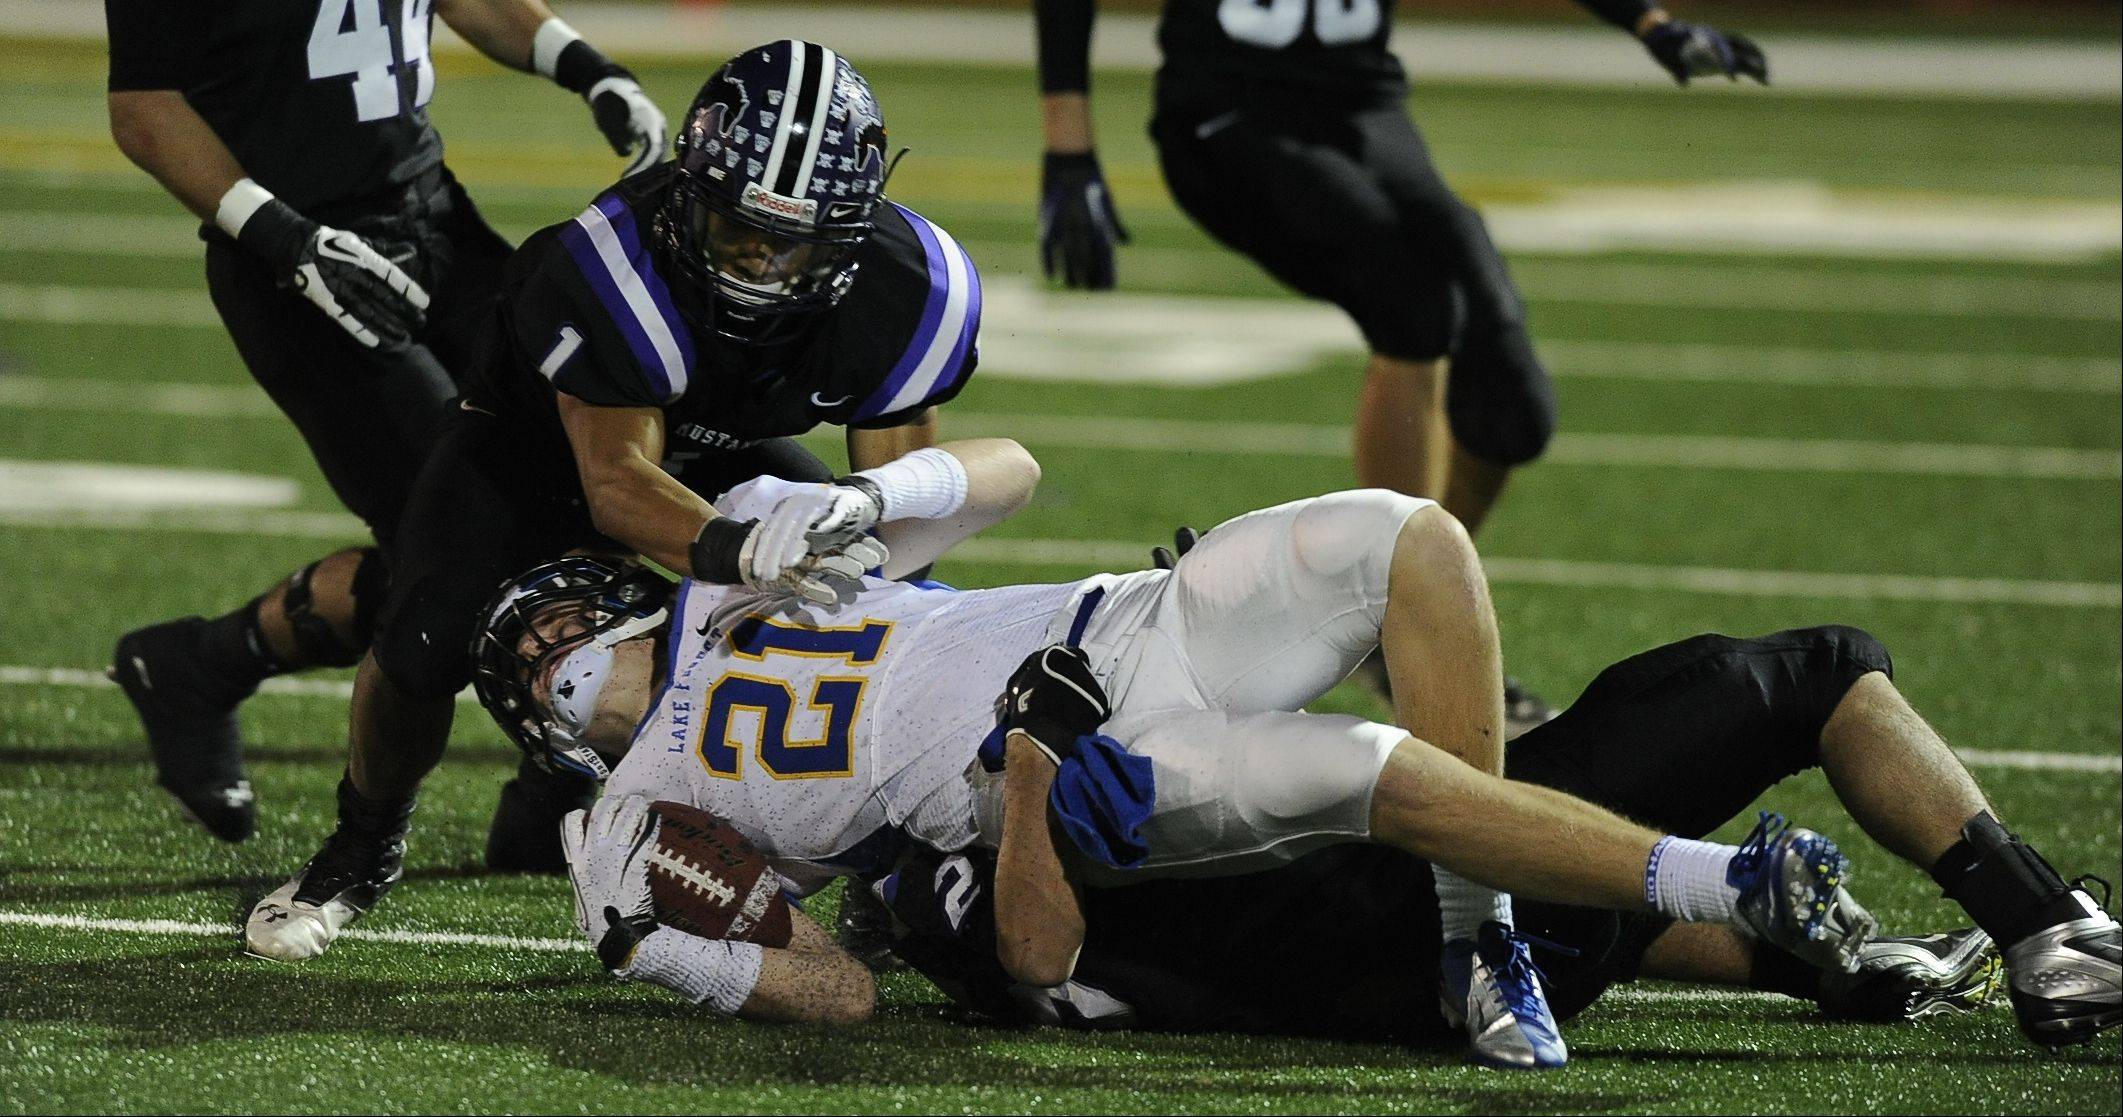 Playoffs-Round One- Photos from the Rolling Meadows vs. Lake Forest football game on Friday, October 26th, in Rolling Meadows